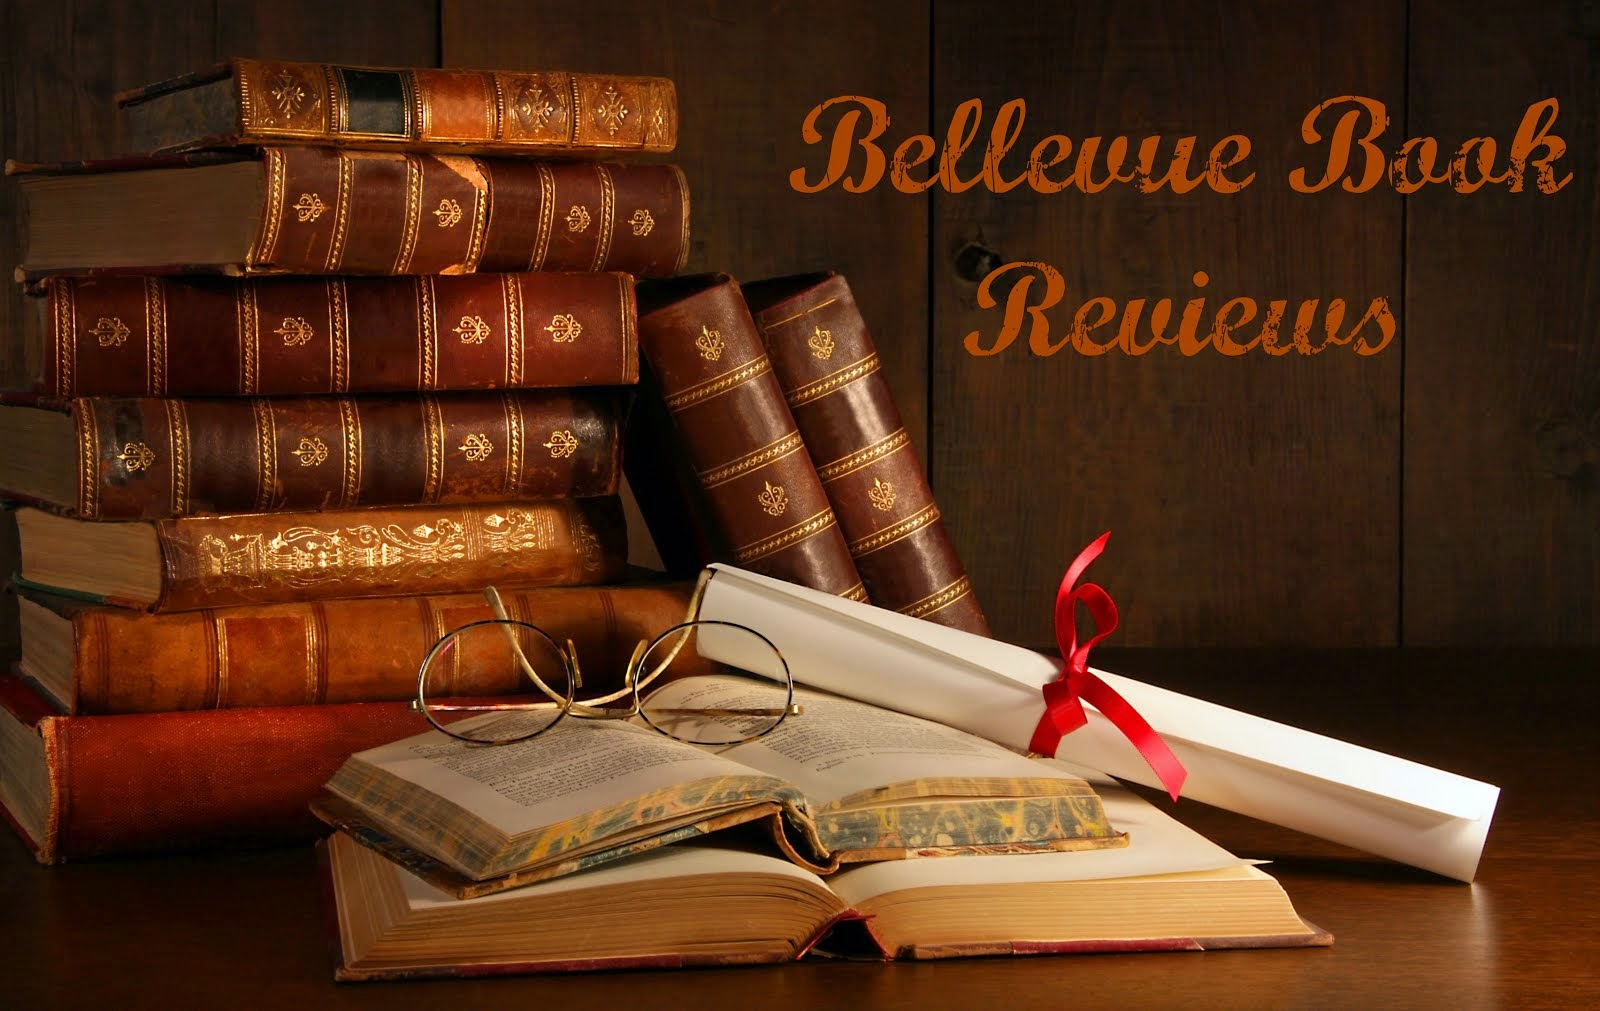 Bellevue Book Reviews